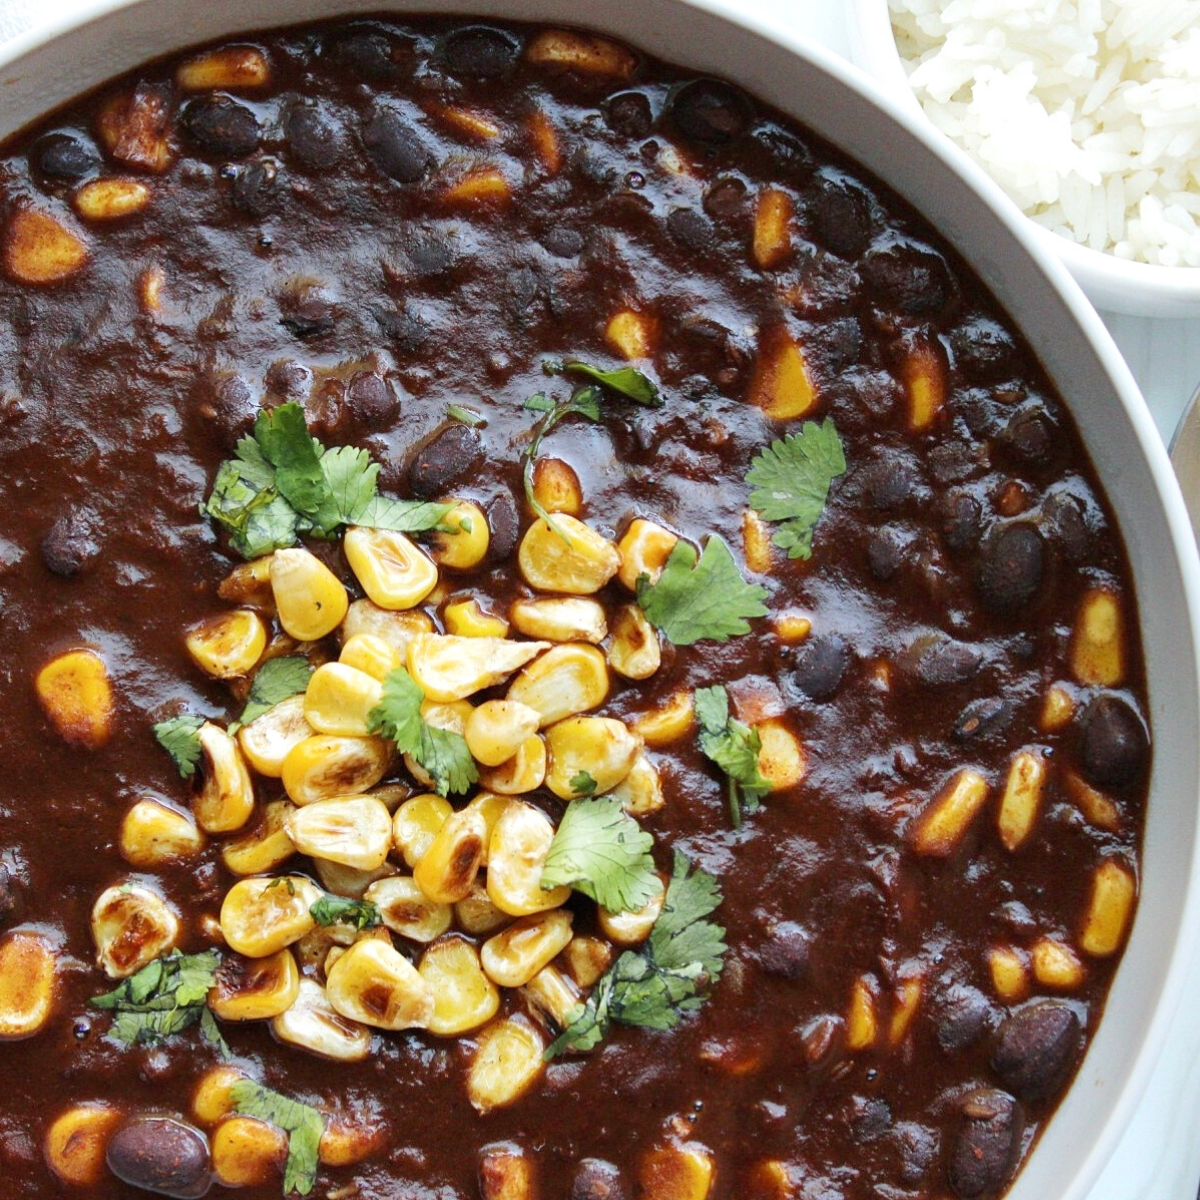 Bowl of vegetarian chili with cilantro and corn.